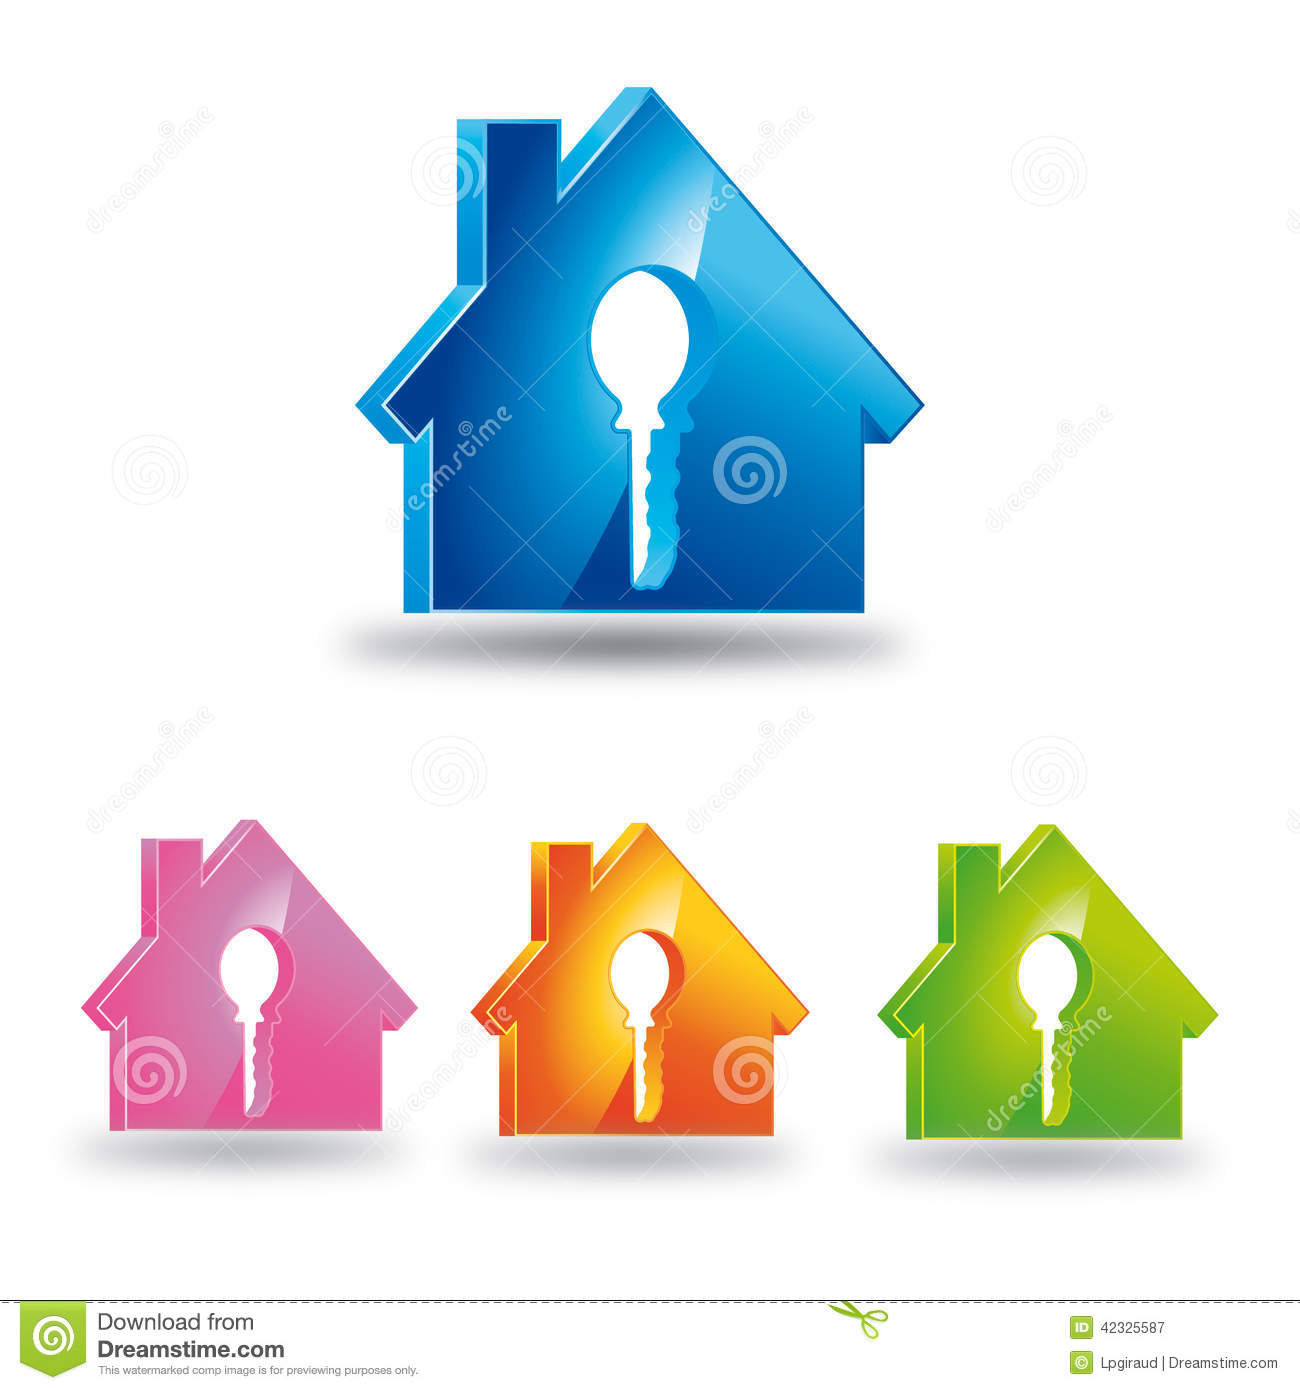 Maison et cl de logo illustration stock image 42325587 for La cle de la maison